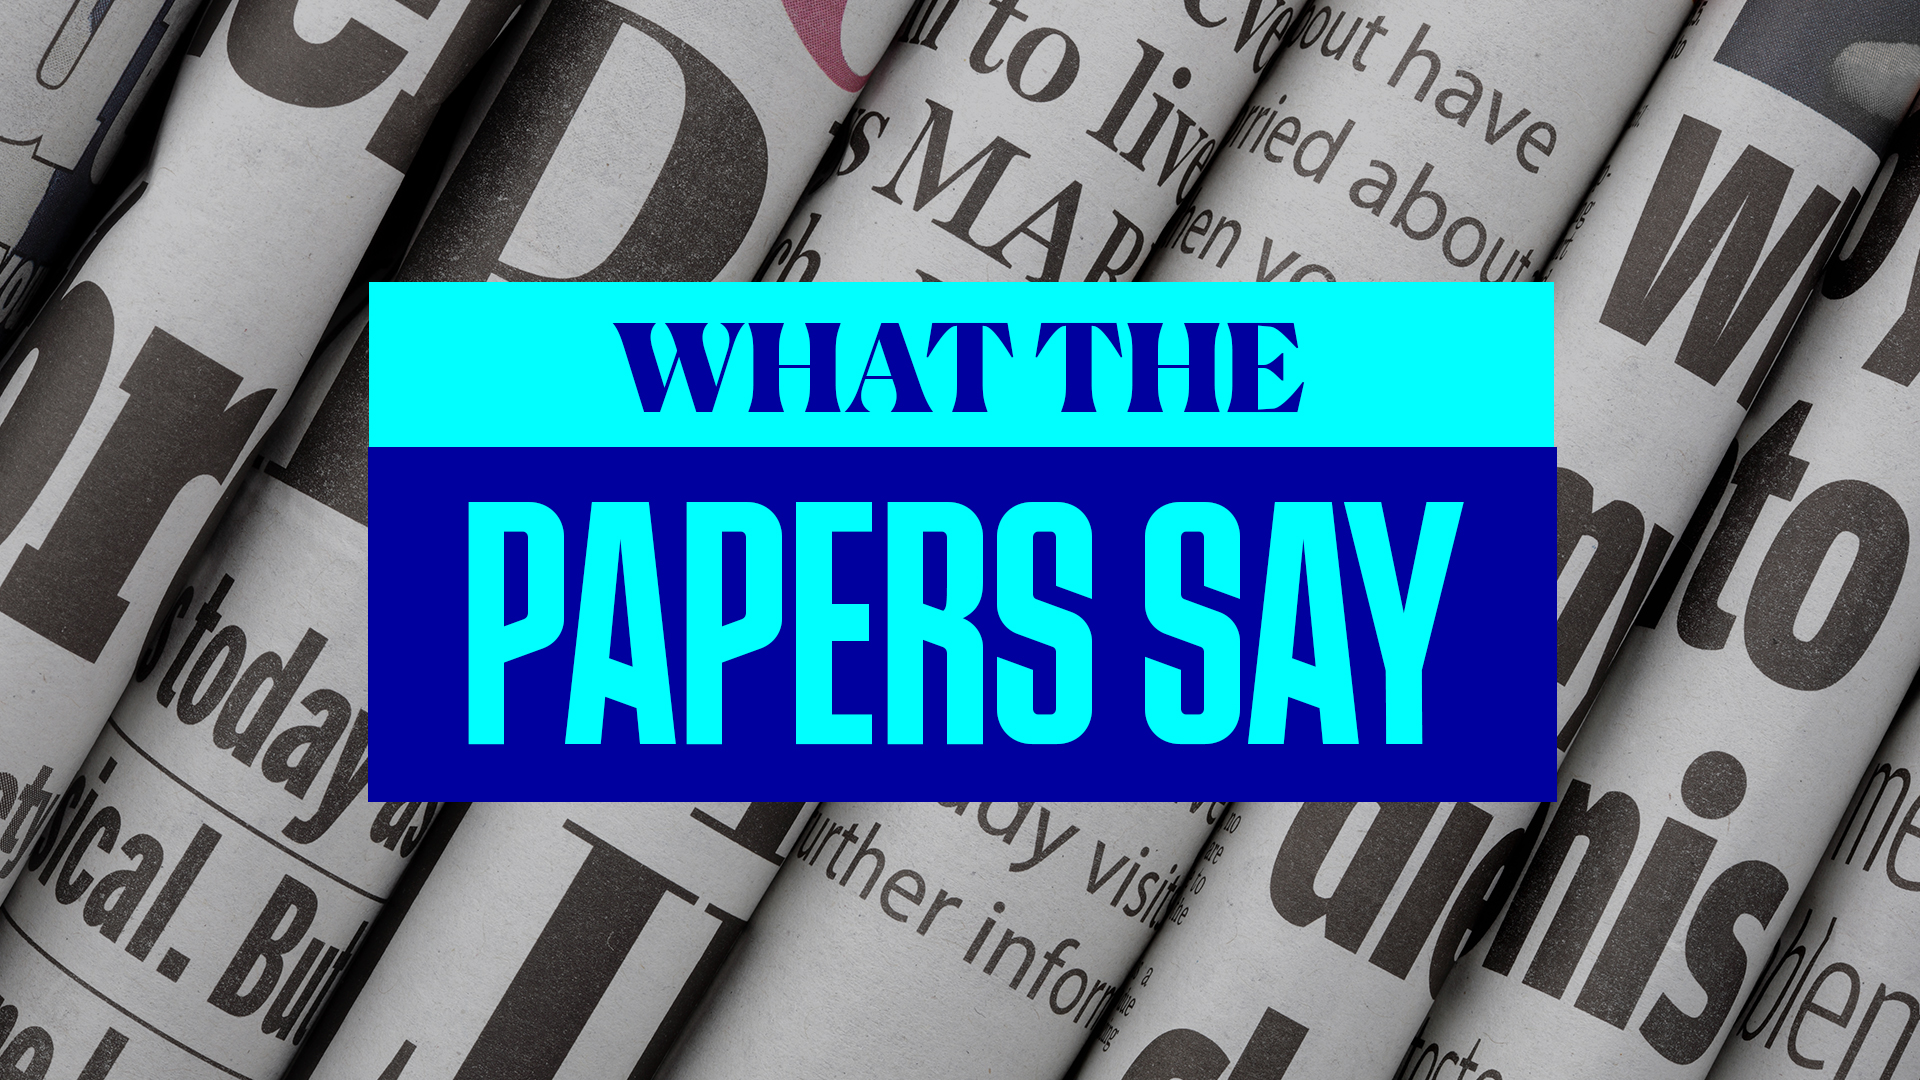 Club-0726-content-graphics-what-the-papers-say-1920x1080px_21.22